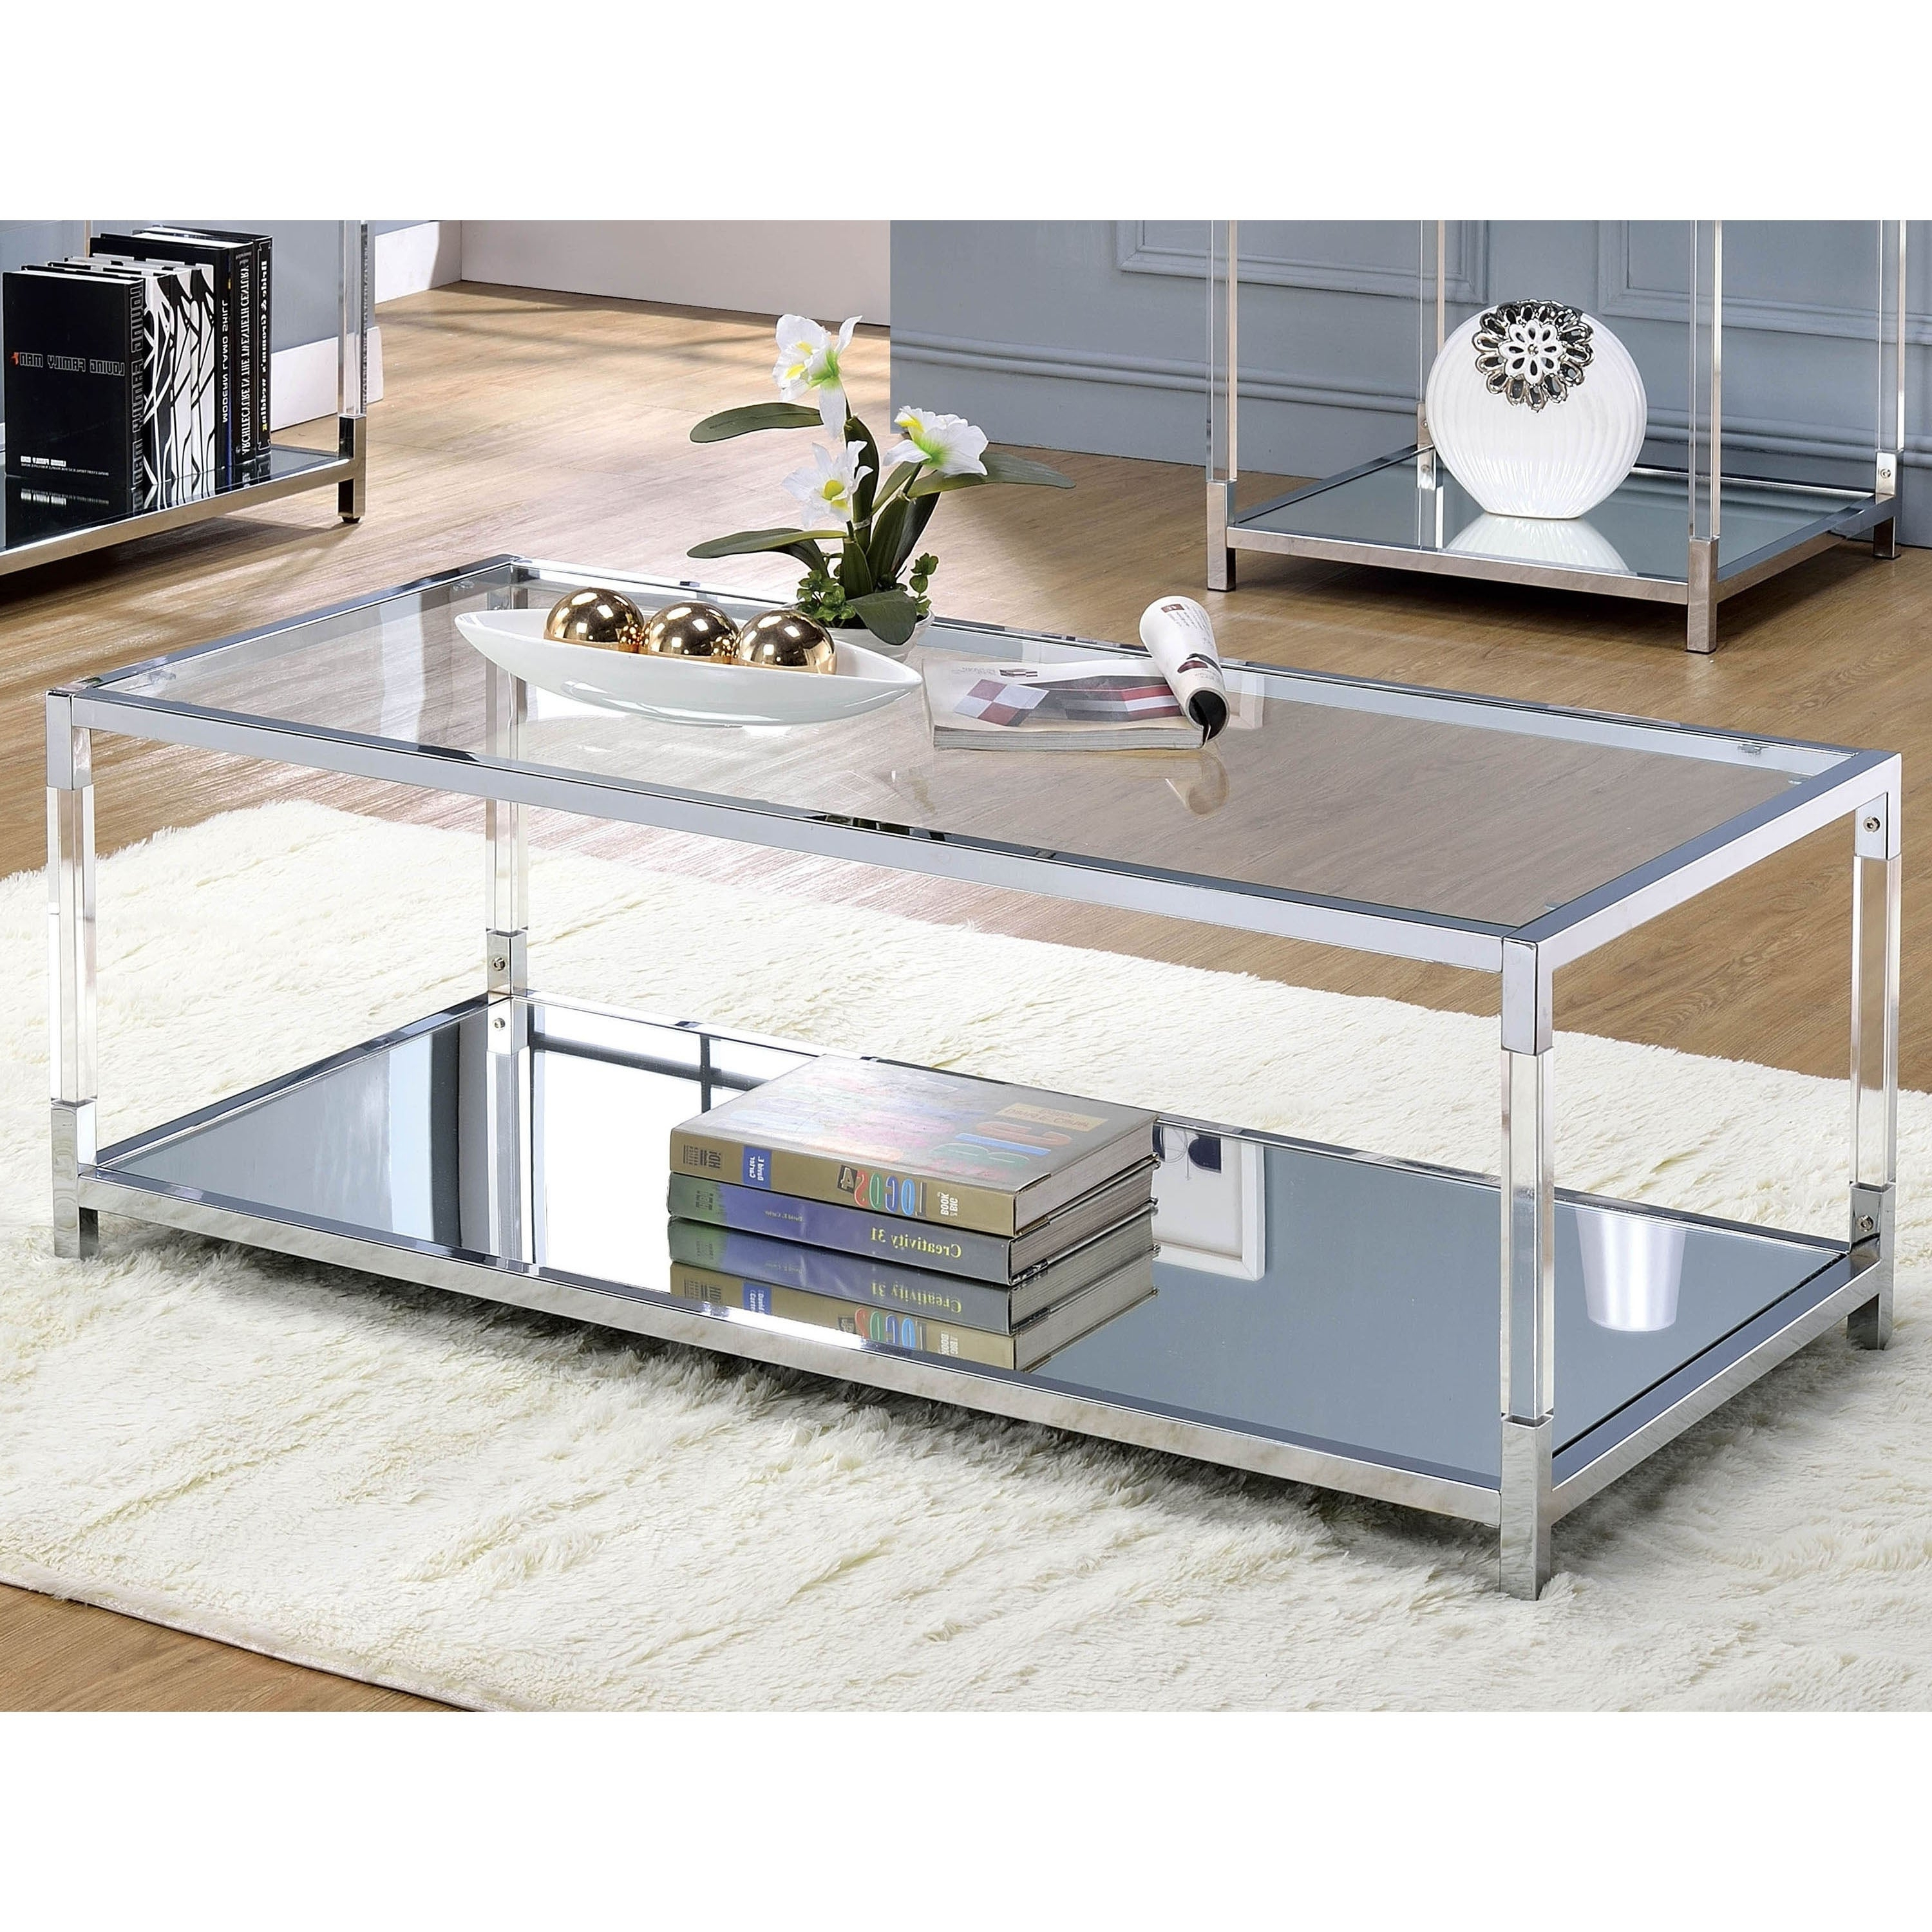 Thalberg Contemporary Chrome Coffee Tablefoa Pertaining To Most Up To Date Contemporary Chrome Glass Top And Mirror Shelf Coffee Tables (View 18 of 20)